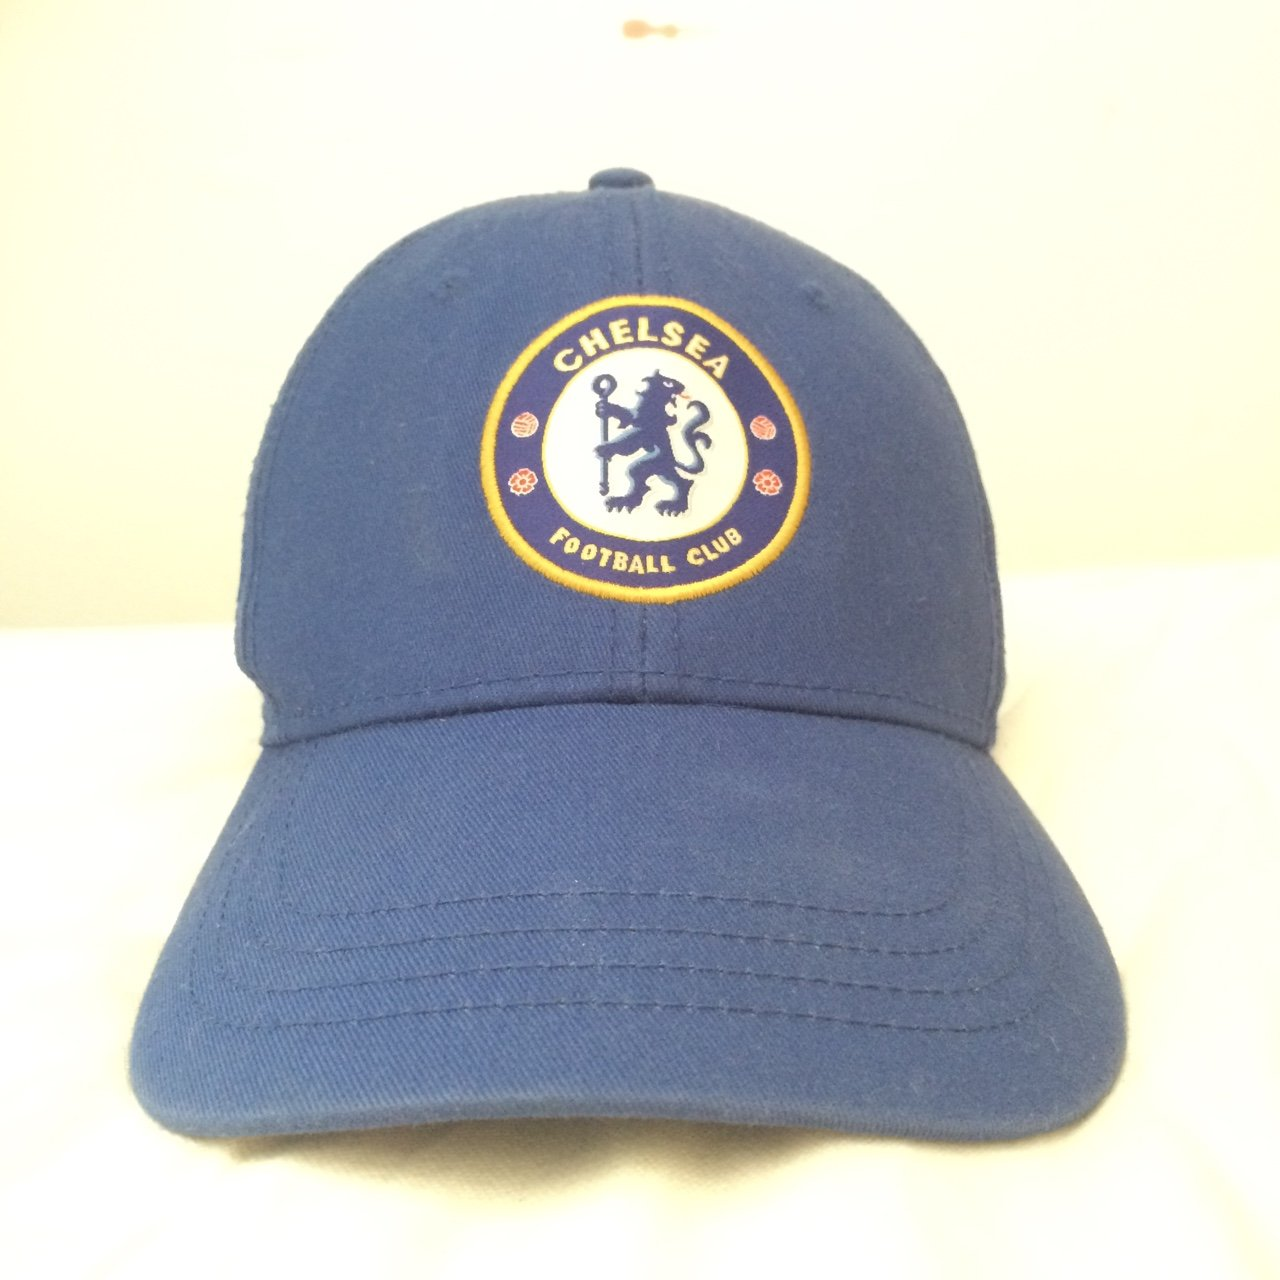 d764cbc9d9d Chelsea FC Cap •Officially from the Chelsea FC Store •Never - Depop